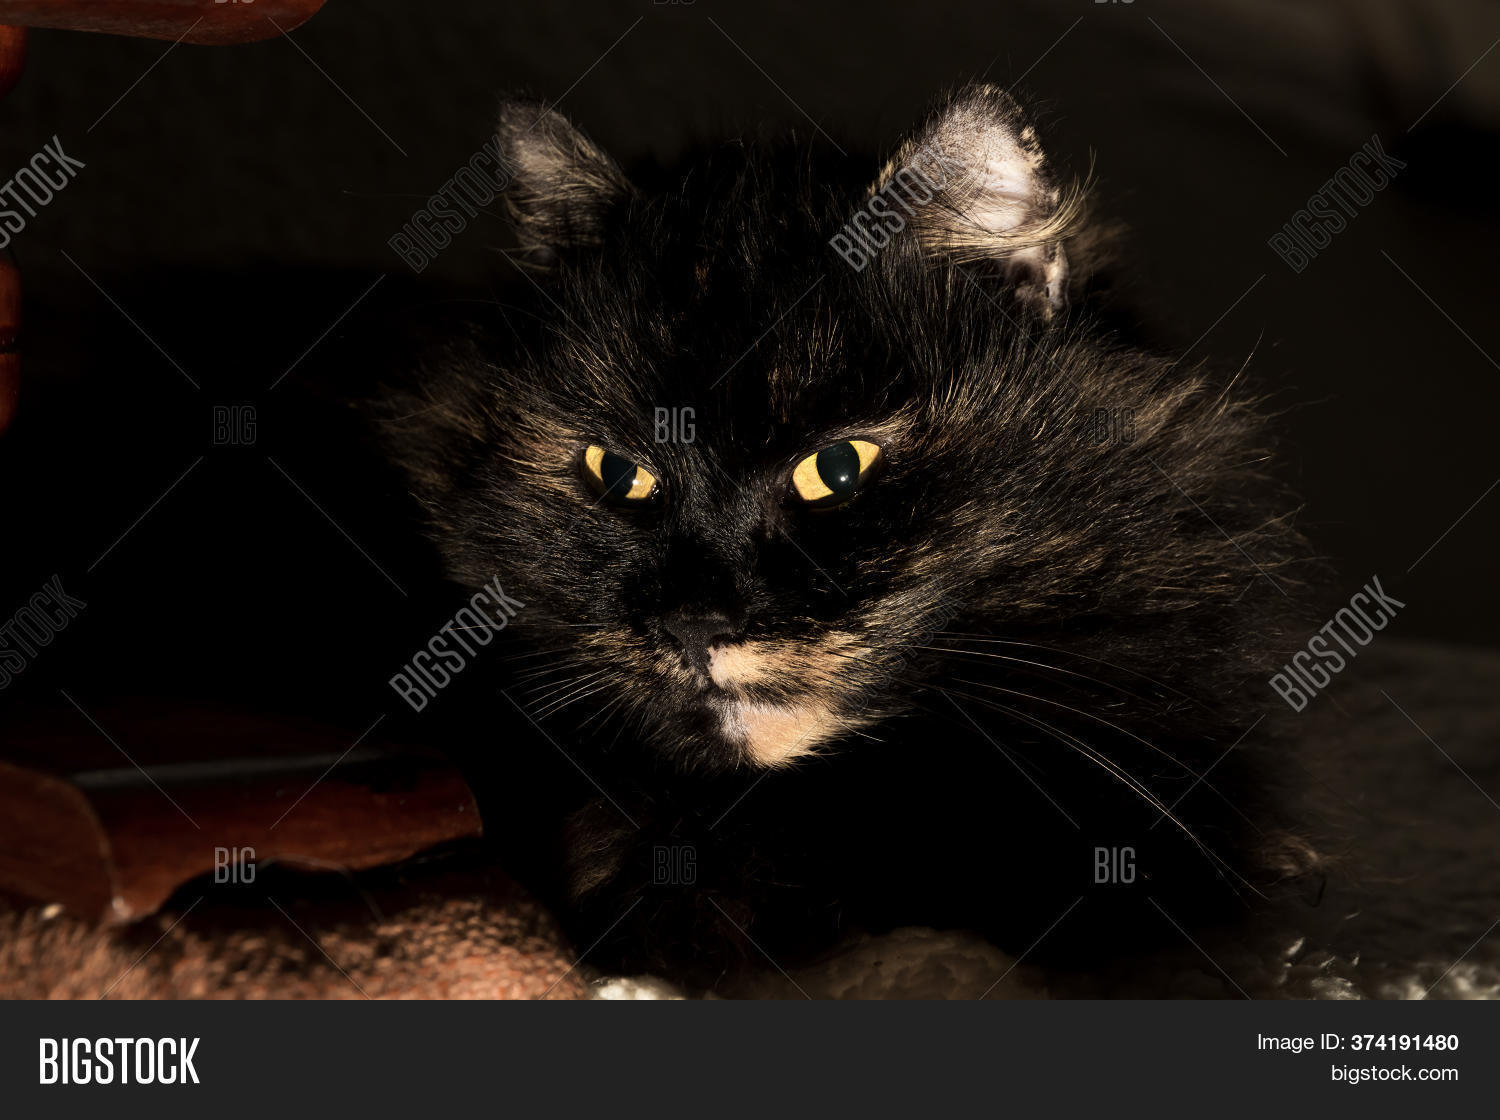 Cat Yellow Eyes Image Photo Free Trial Bigstock